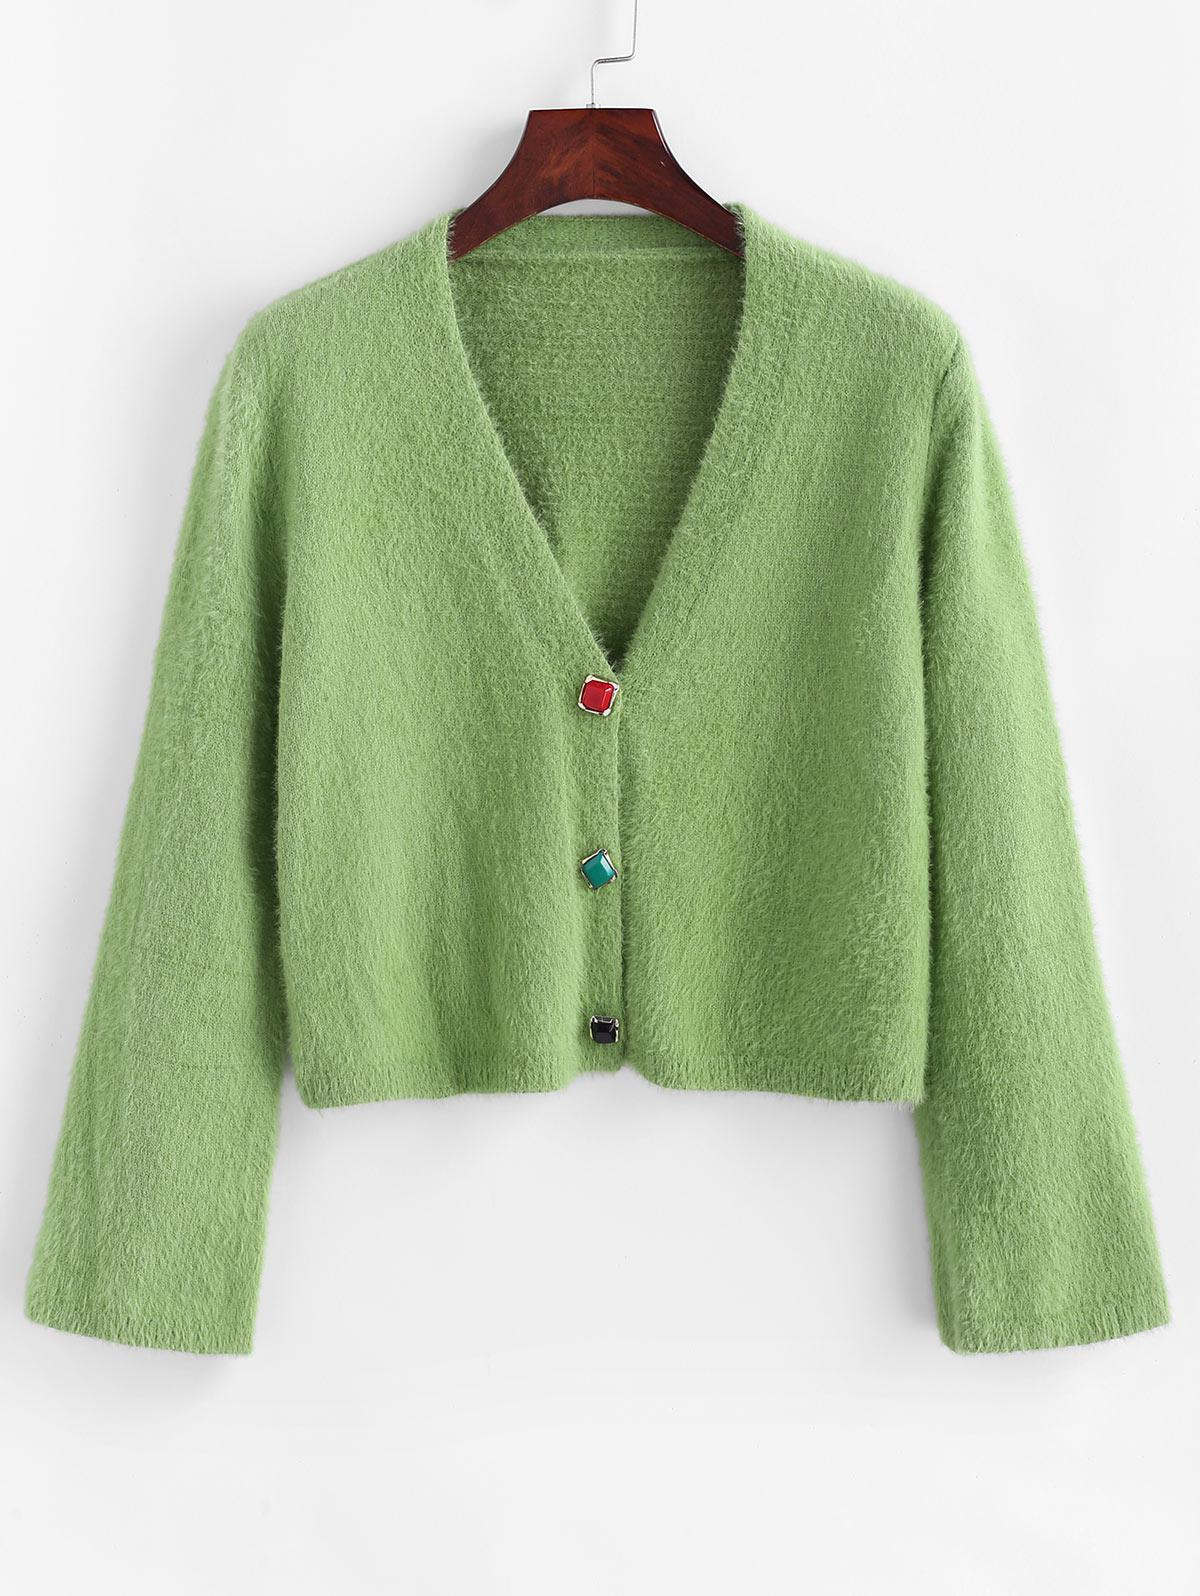 Fuzzy Plunging Colorful Button Cardigan